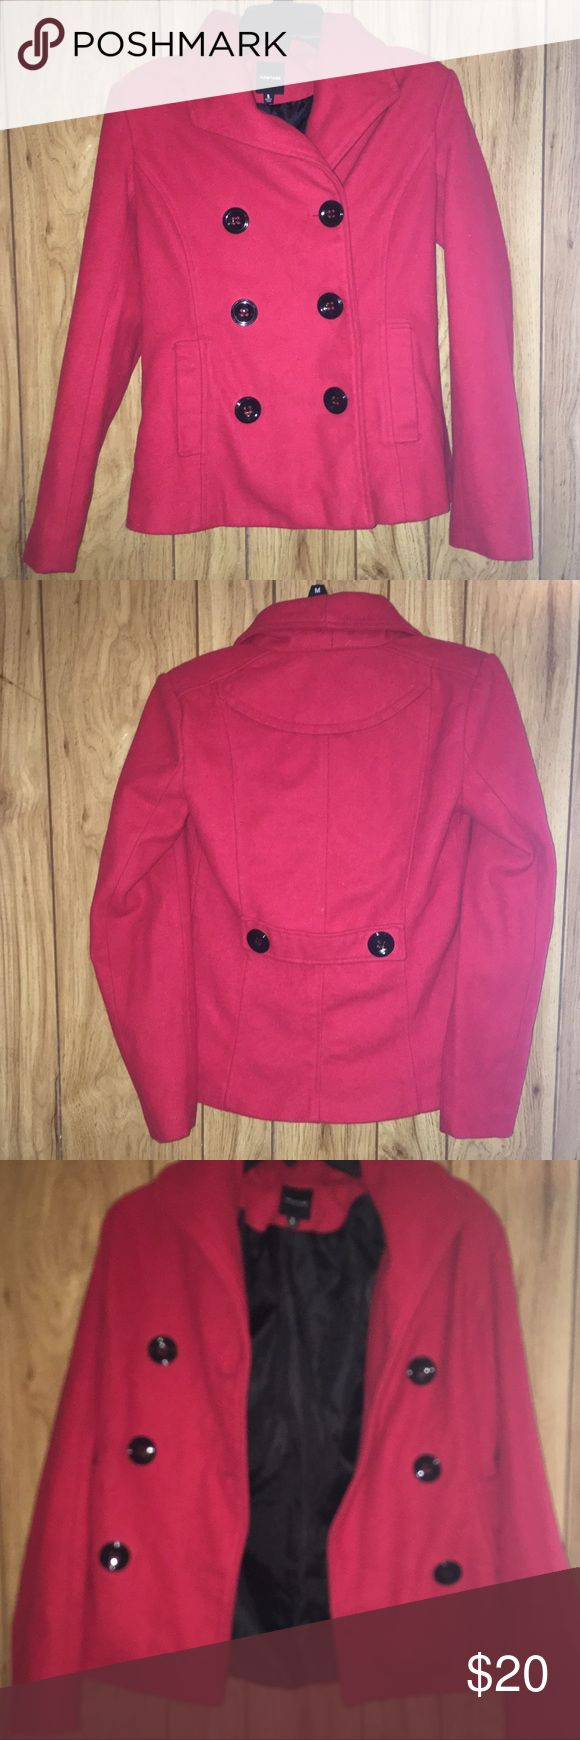 Red Pea Coat Red Pea Coat 😍 Free Gift With Every Order ✨ Fast Shipping ✈️ Same Day Shipping If Ordered Before 3PM ✔️ Offers Welcome ❗ Jackets & Coats Pea Coats